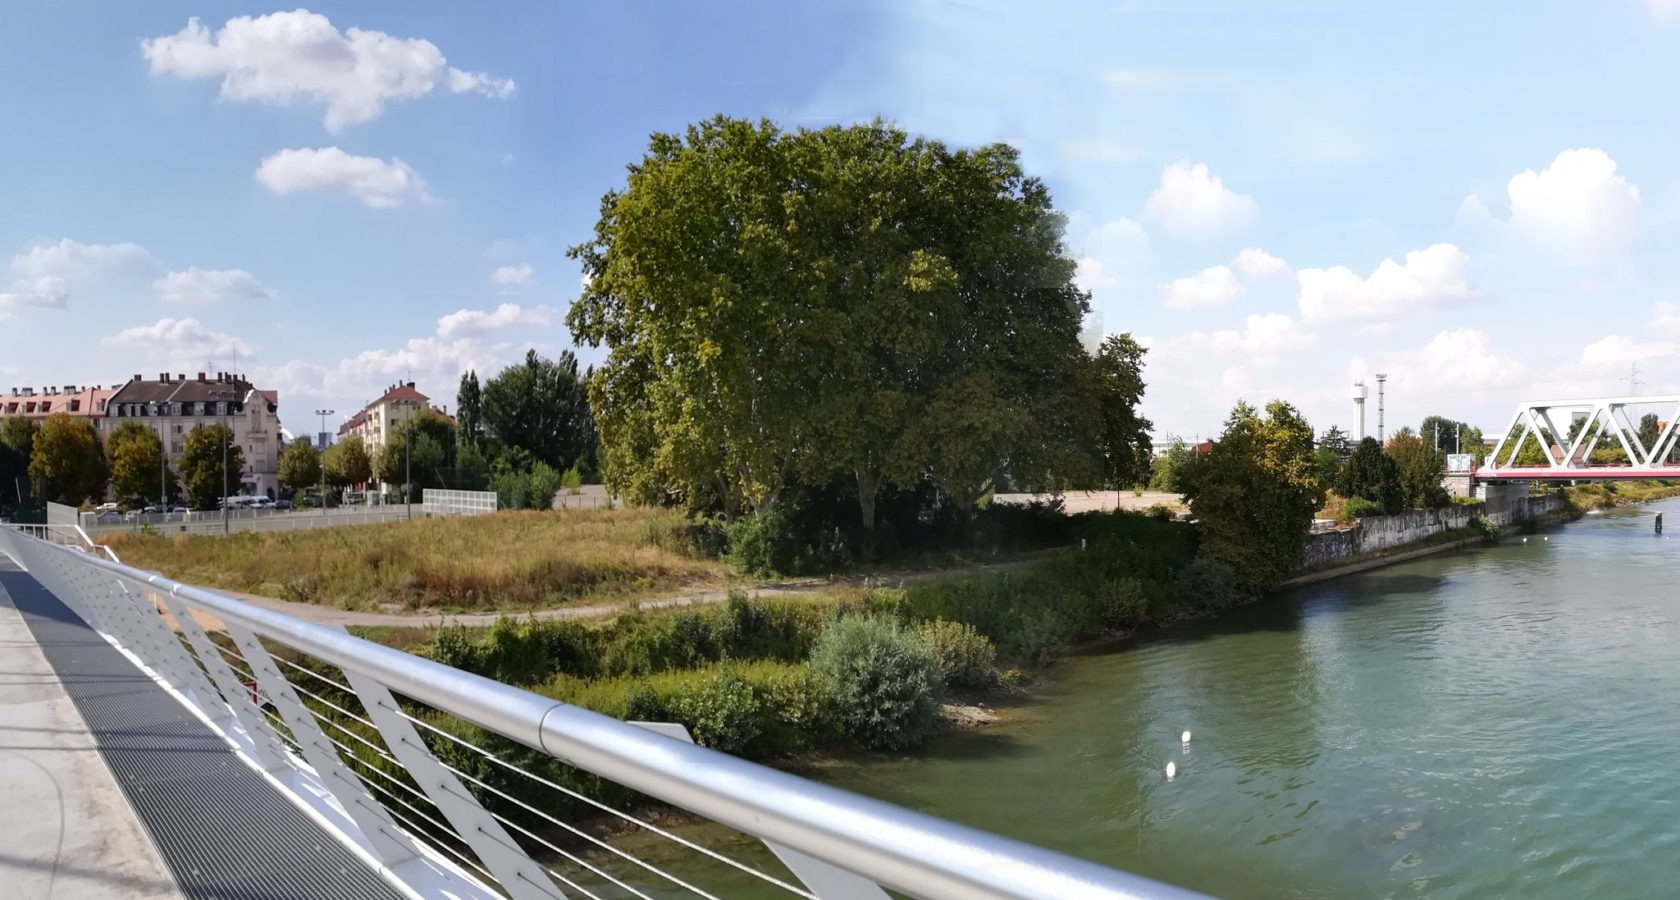 View over the banks of the Rhine as they look today, as seen from the Beatus Rhenanus bridge. Credit: SPL Deux-Rives